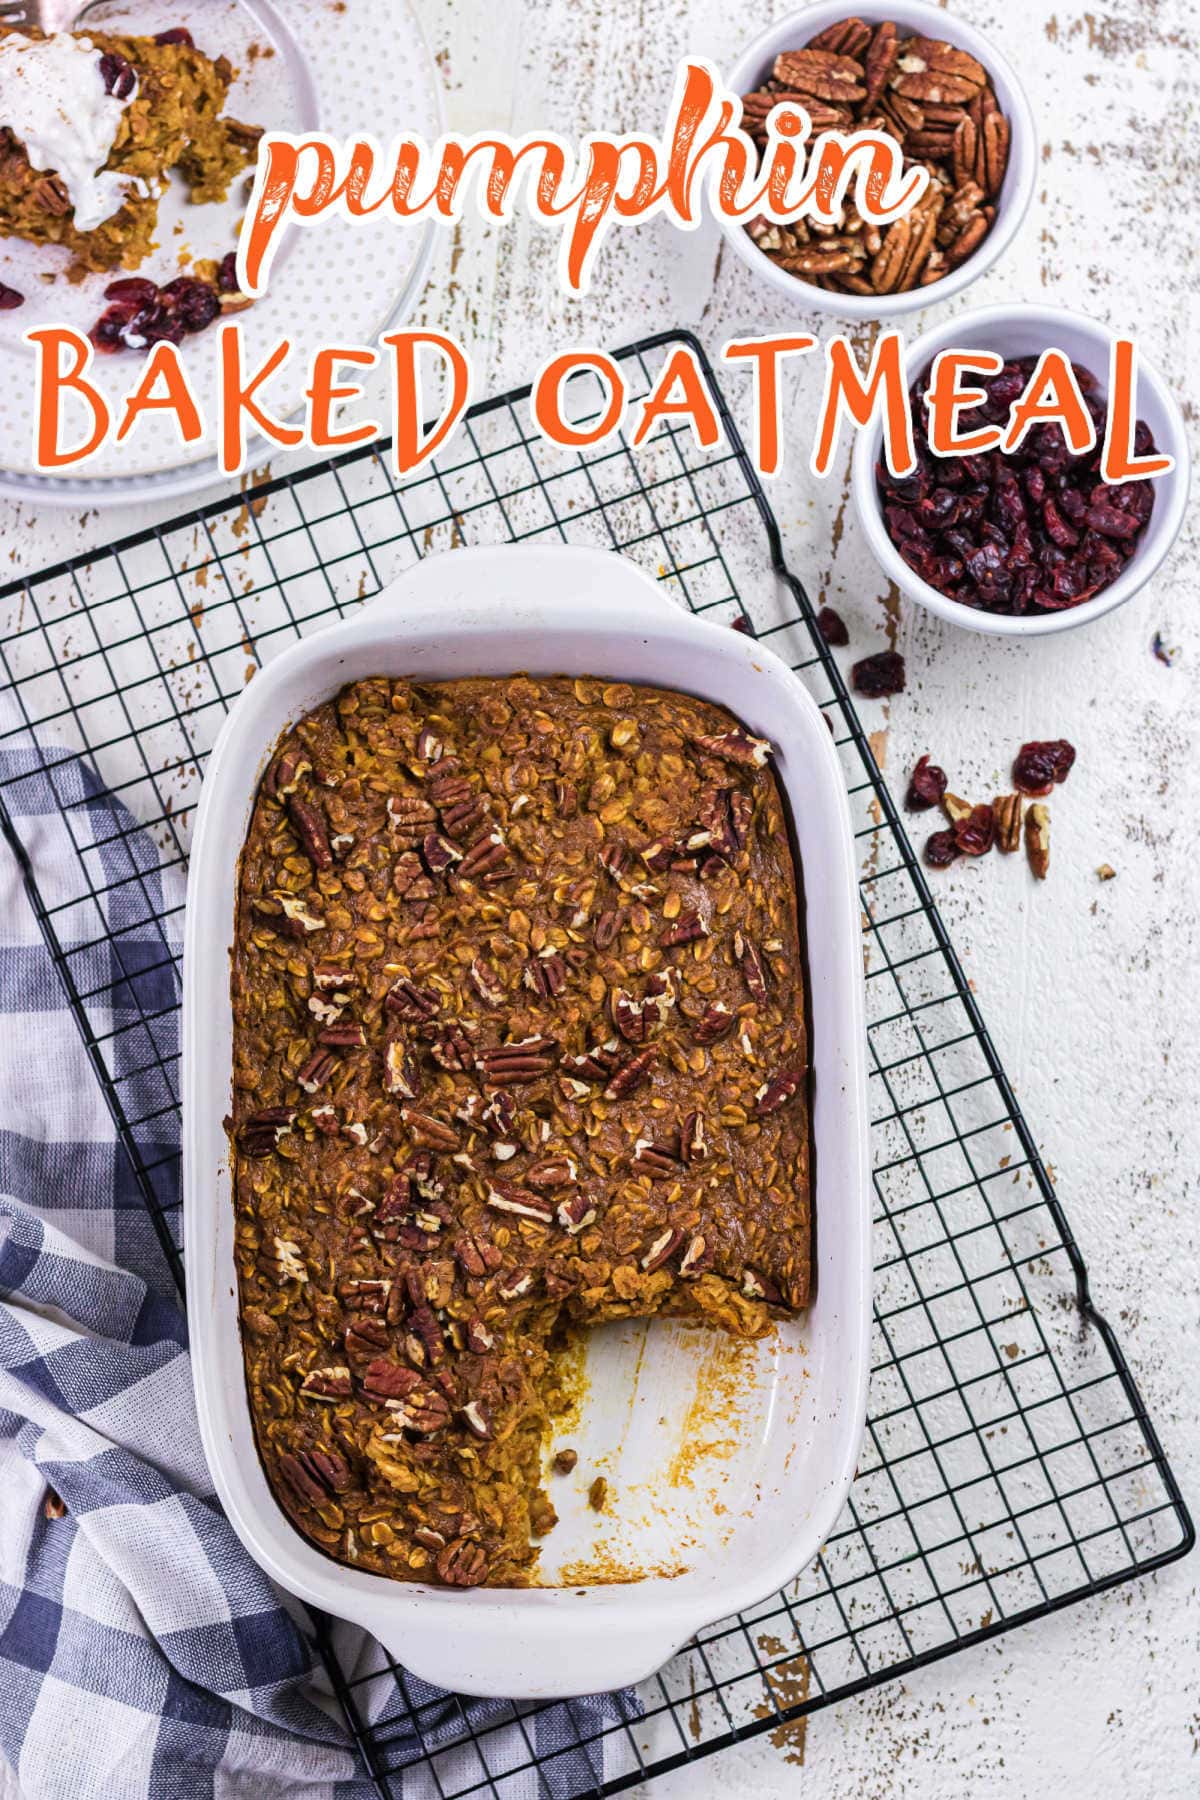 Overhead view of the baked oatmeal in a casserole dish. Title text overlay.